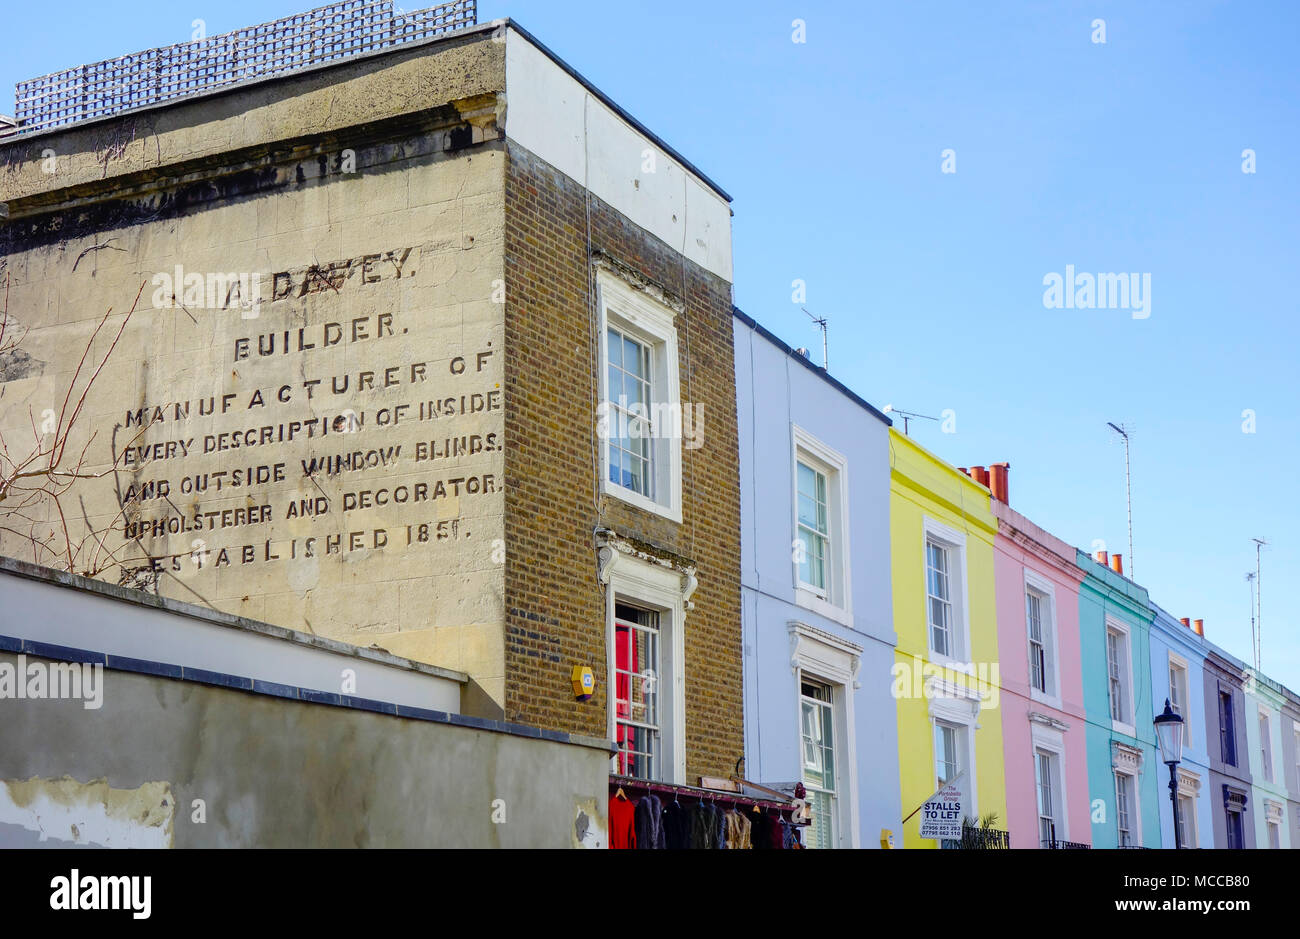 Colourful Houses in Notting Hill, London, UK. - Stock Image